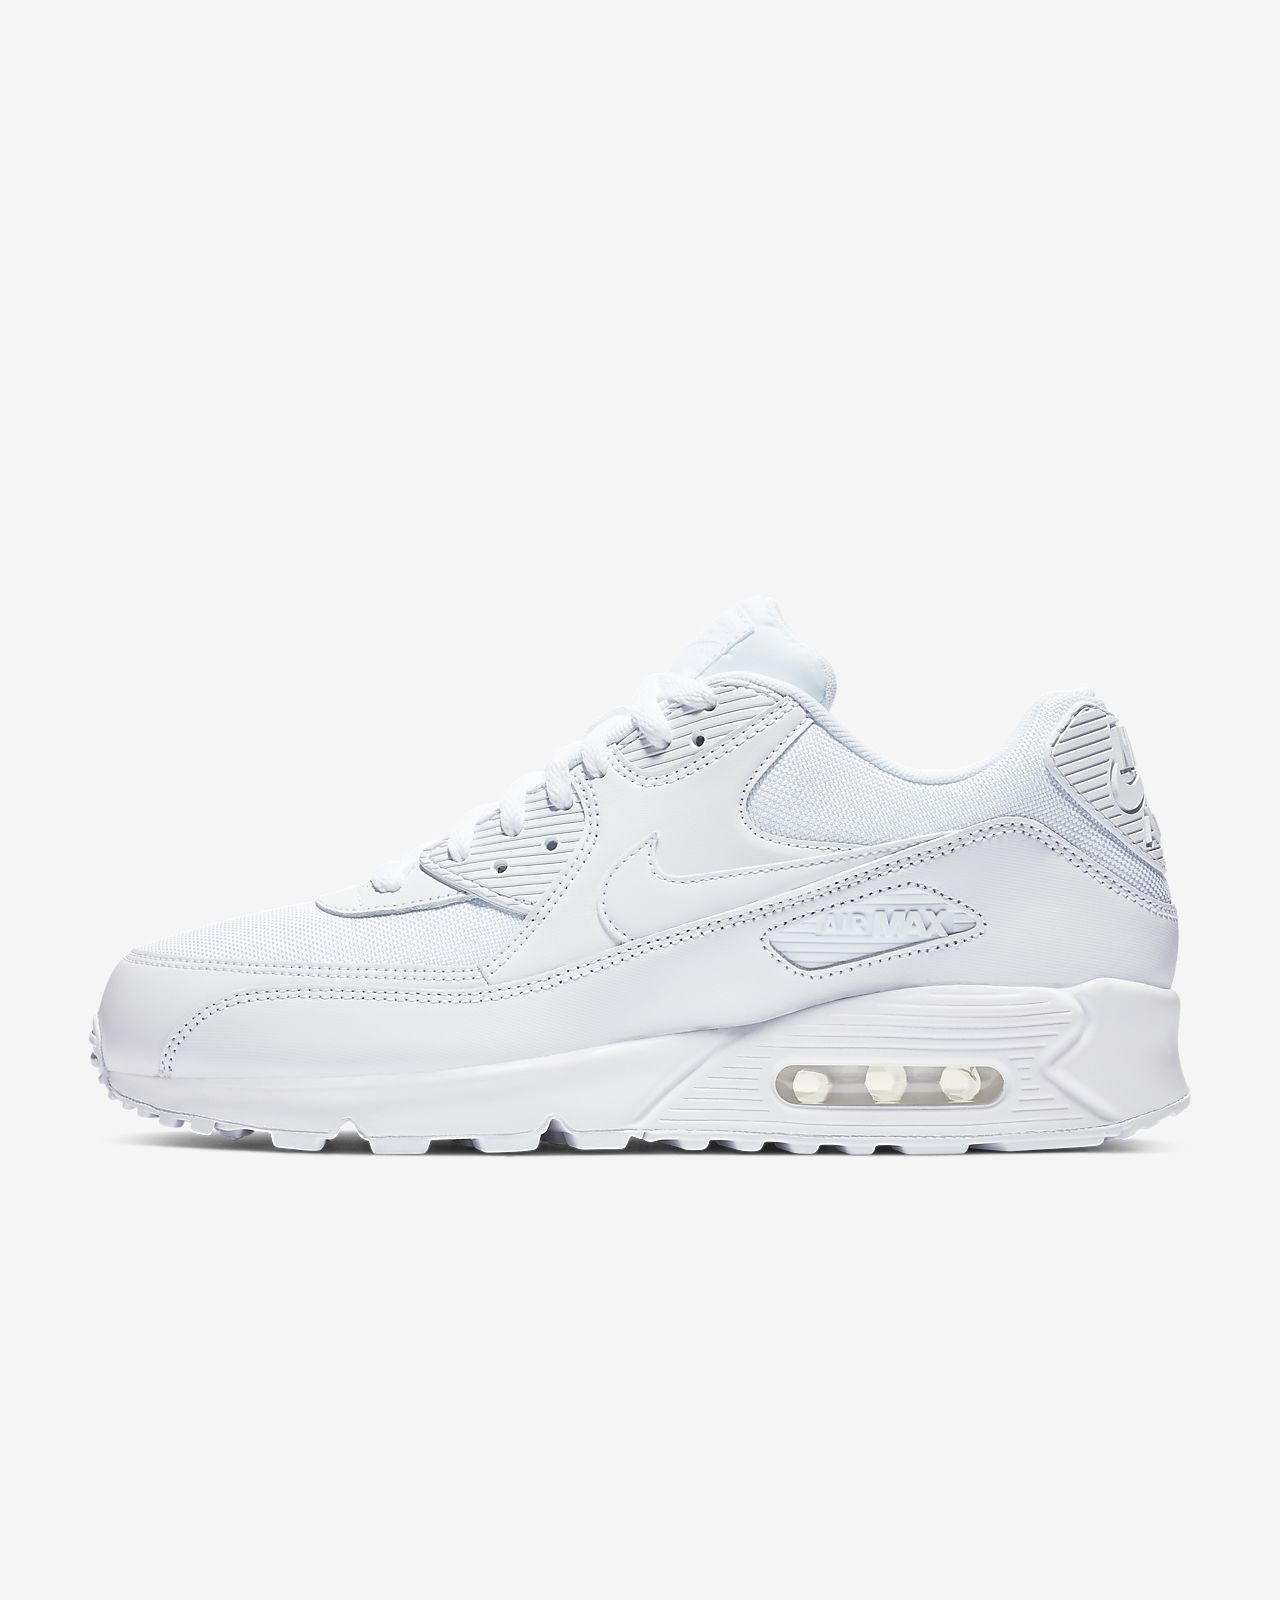 nike air max 90 premium khaki nz